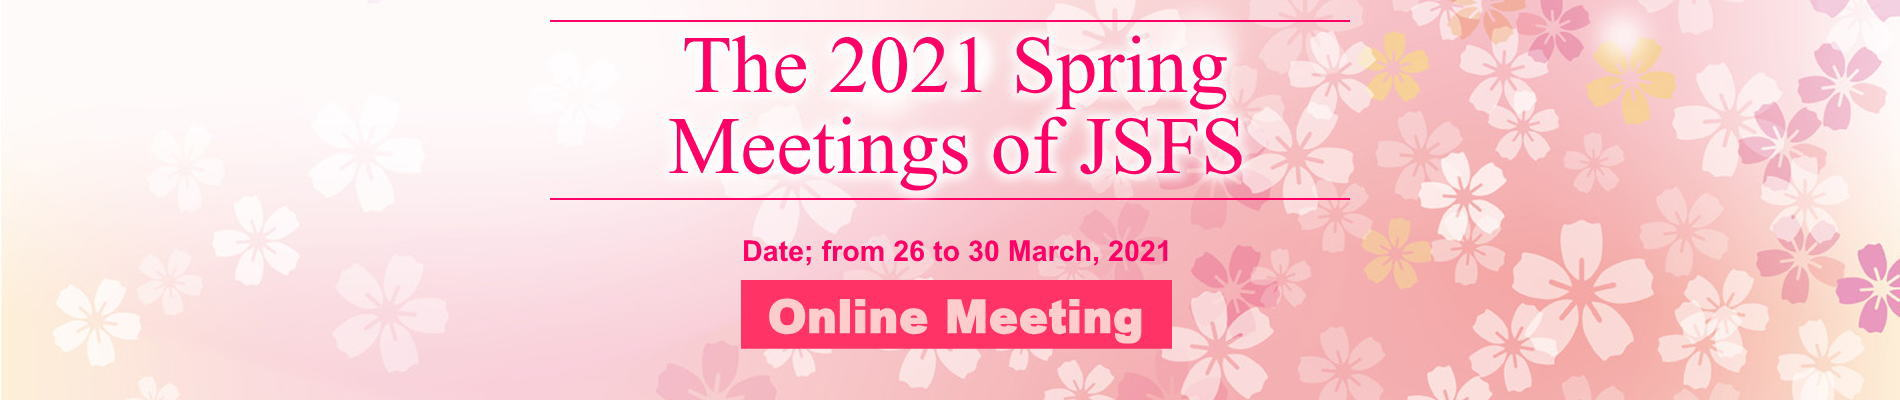 The 2021 Spring Meetings of JSFS